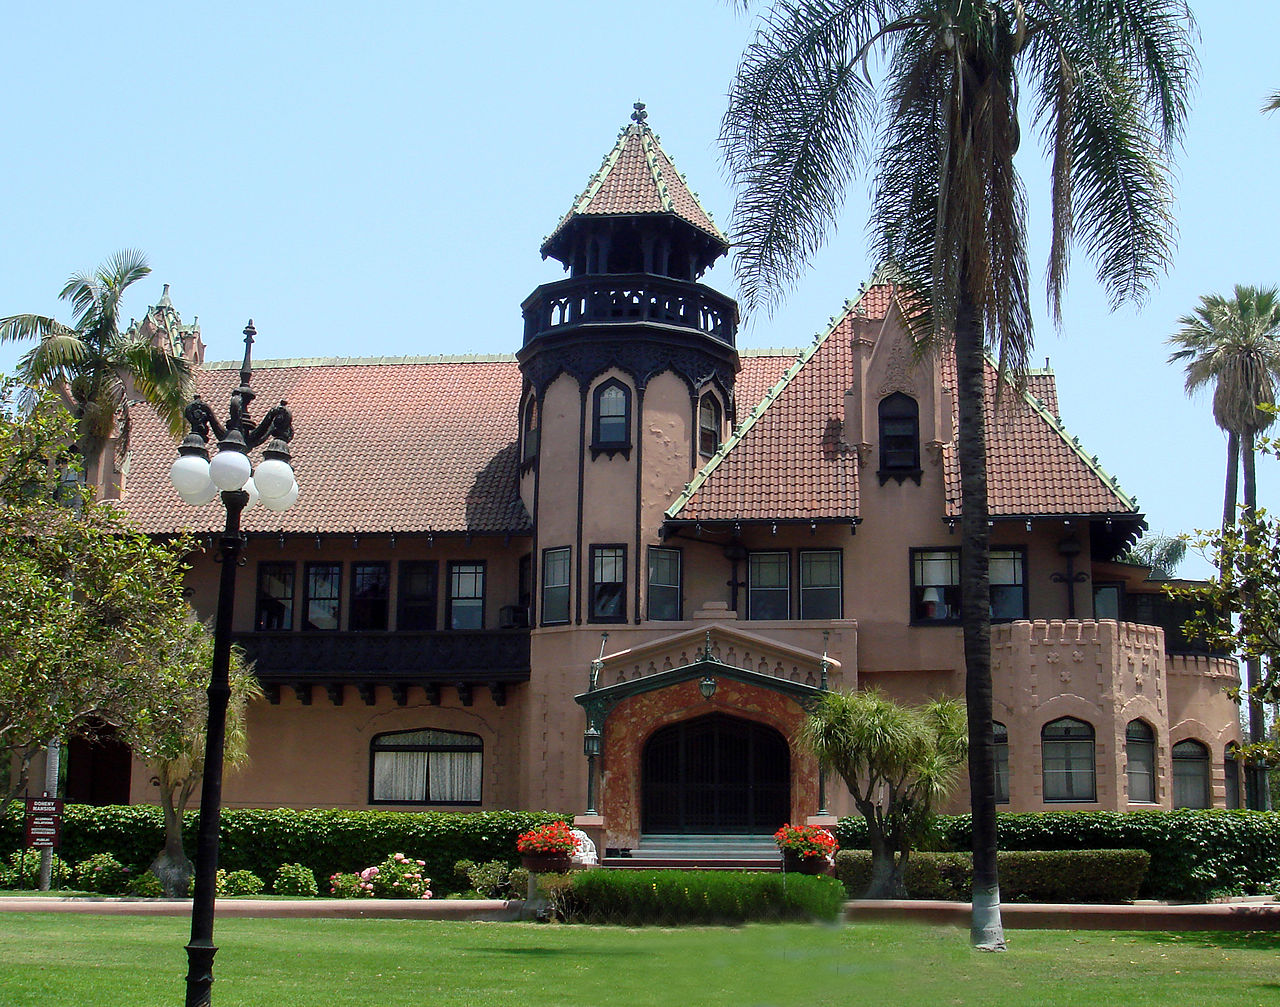 The Doheny Mansion - Truly Amazing Historical Place to Visit in Los Angeles